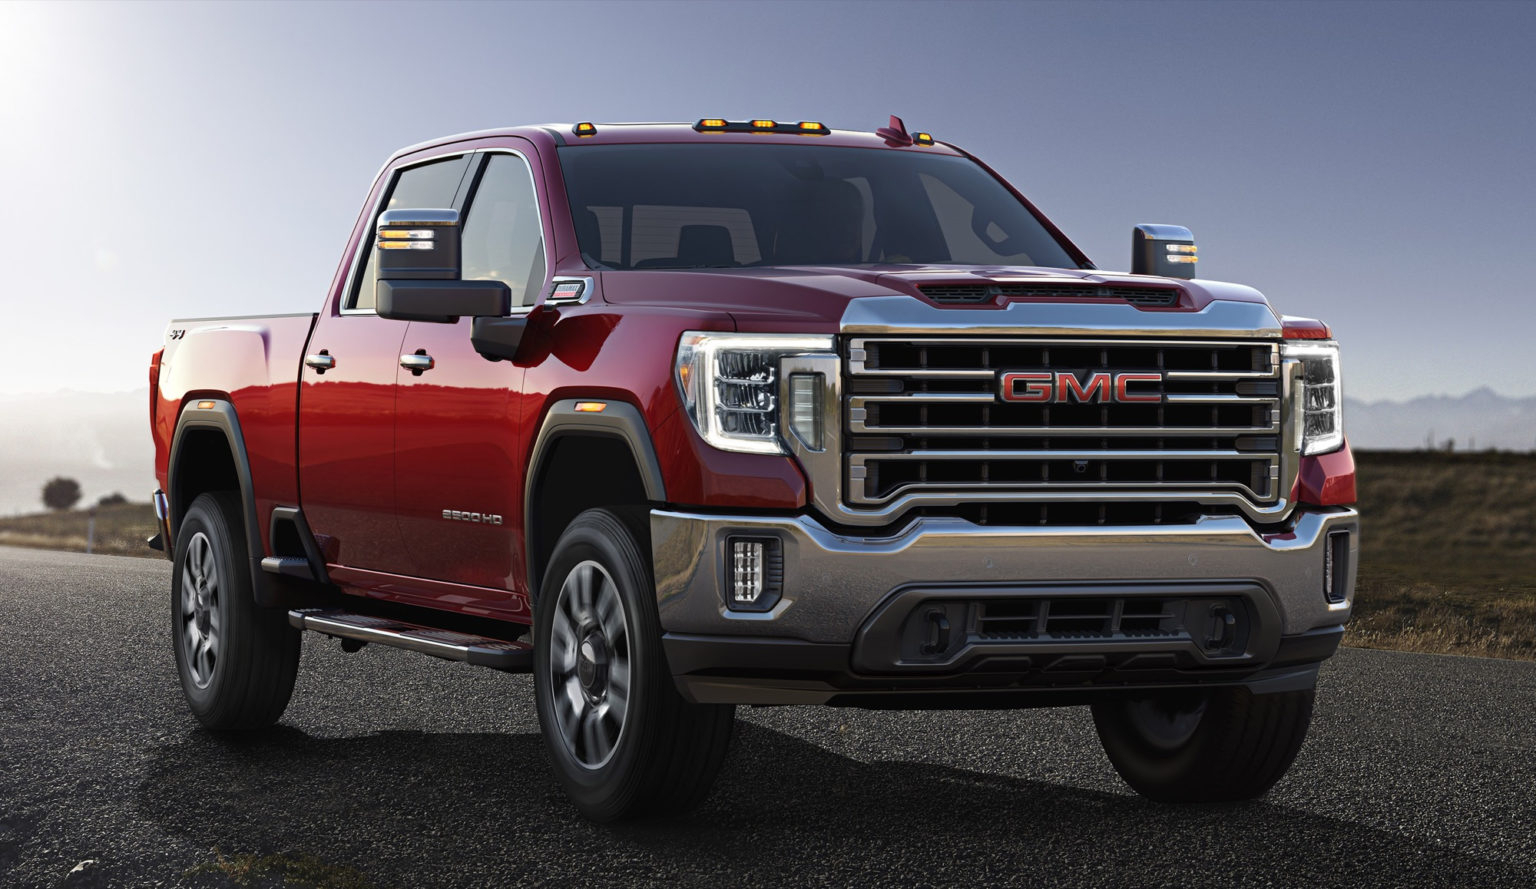 2022 Gmc Sierra Hd Redesign and Concept